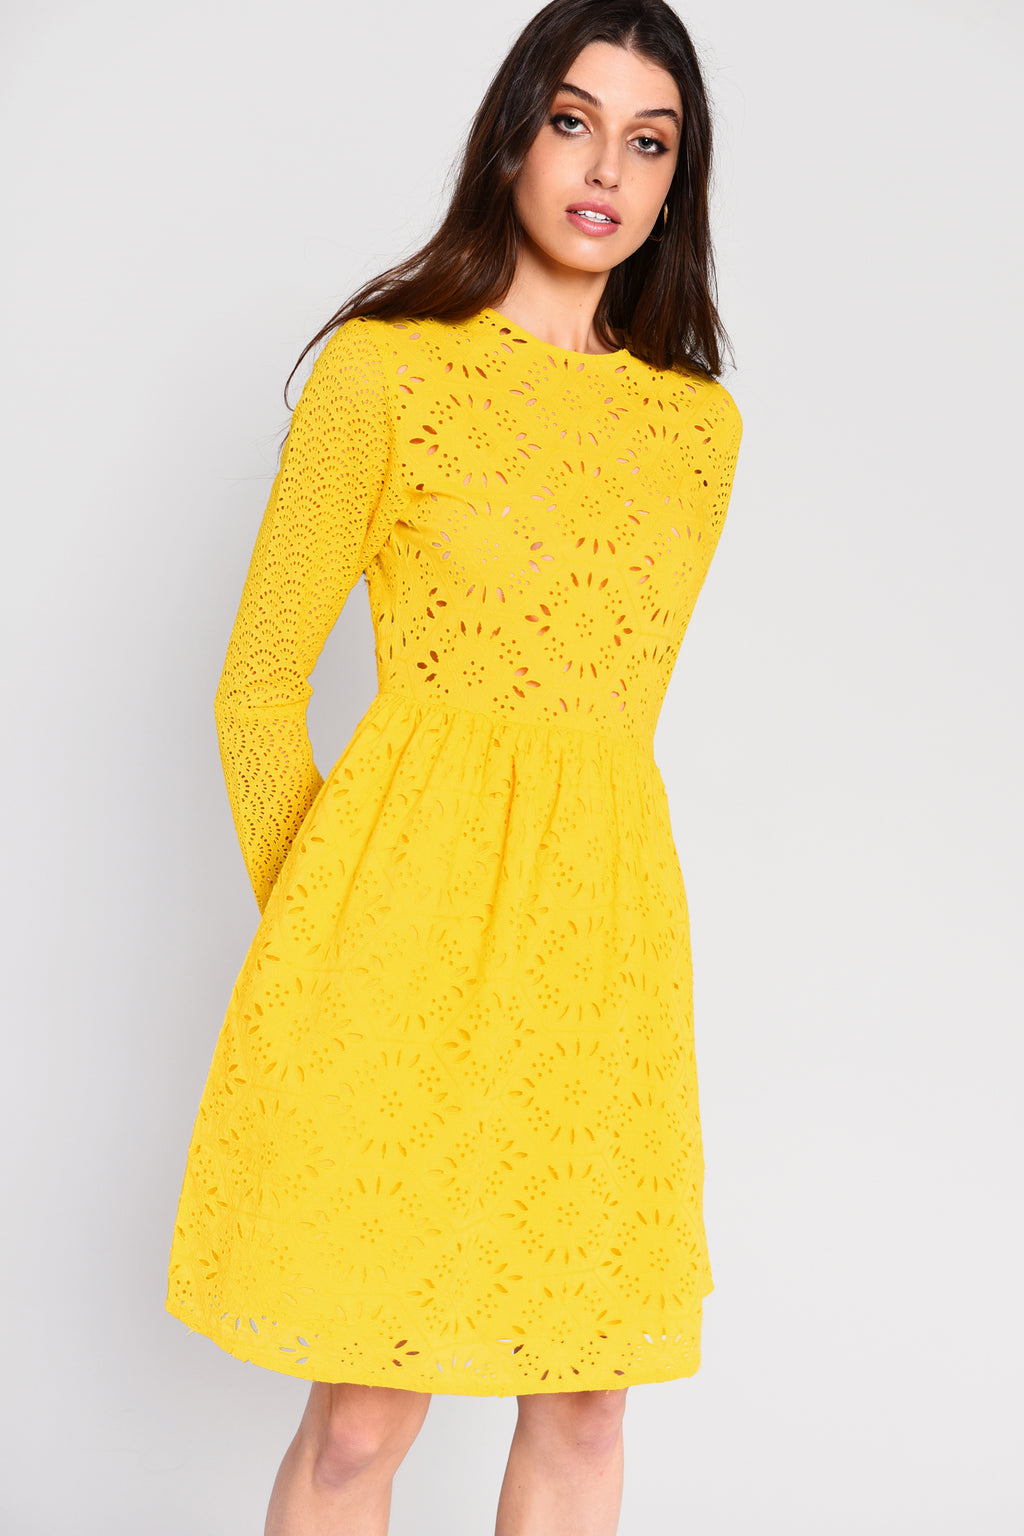 SHELBY broderie anglaise long sleeve dress - yellow